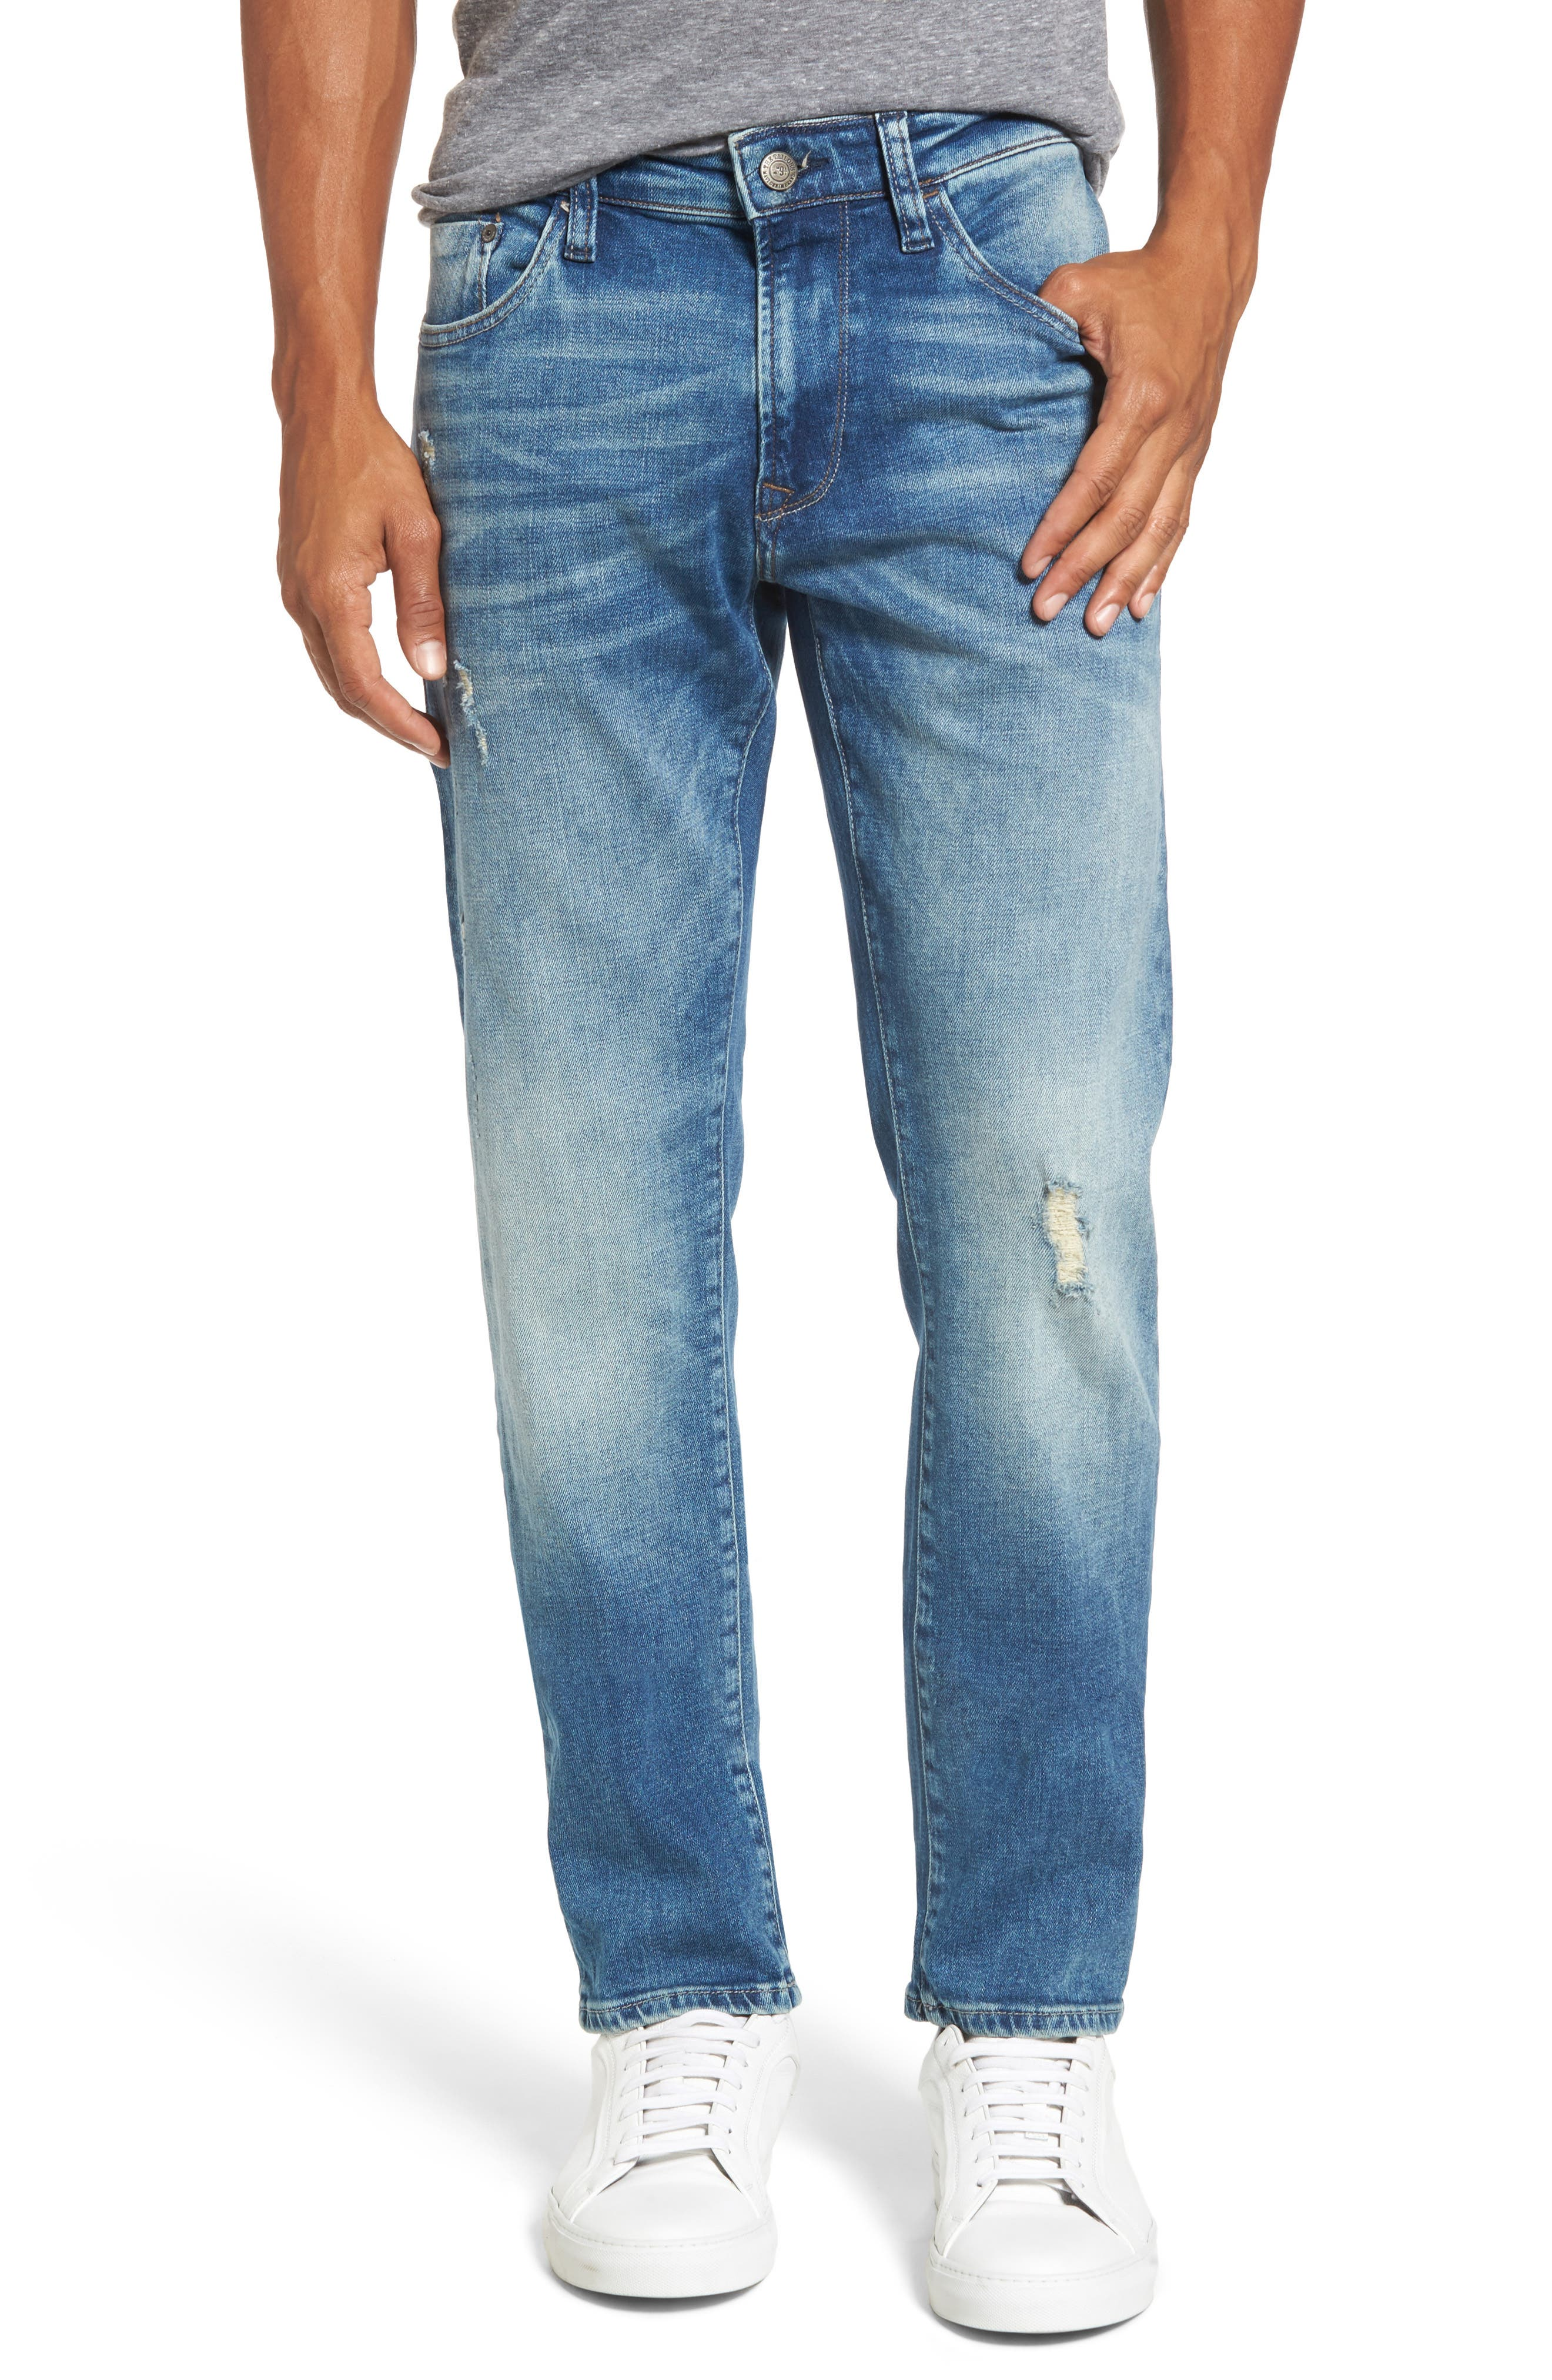 Alternate Image 1 Selected - Mavi Jeans Jake Easy Slim Fit Jeans (Mid Ripped Authentic Vintage)